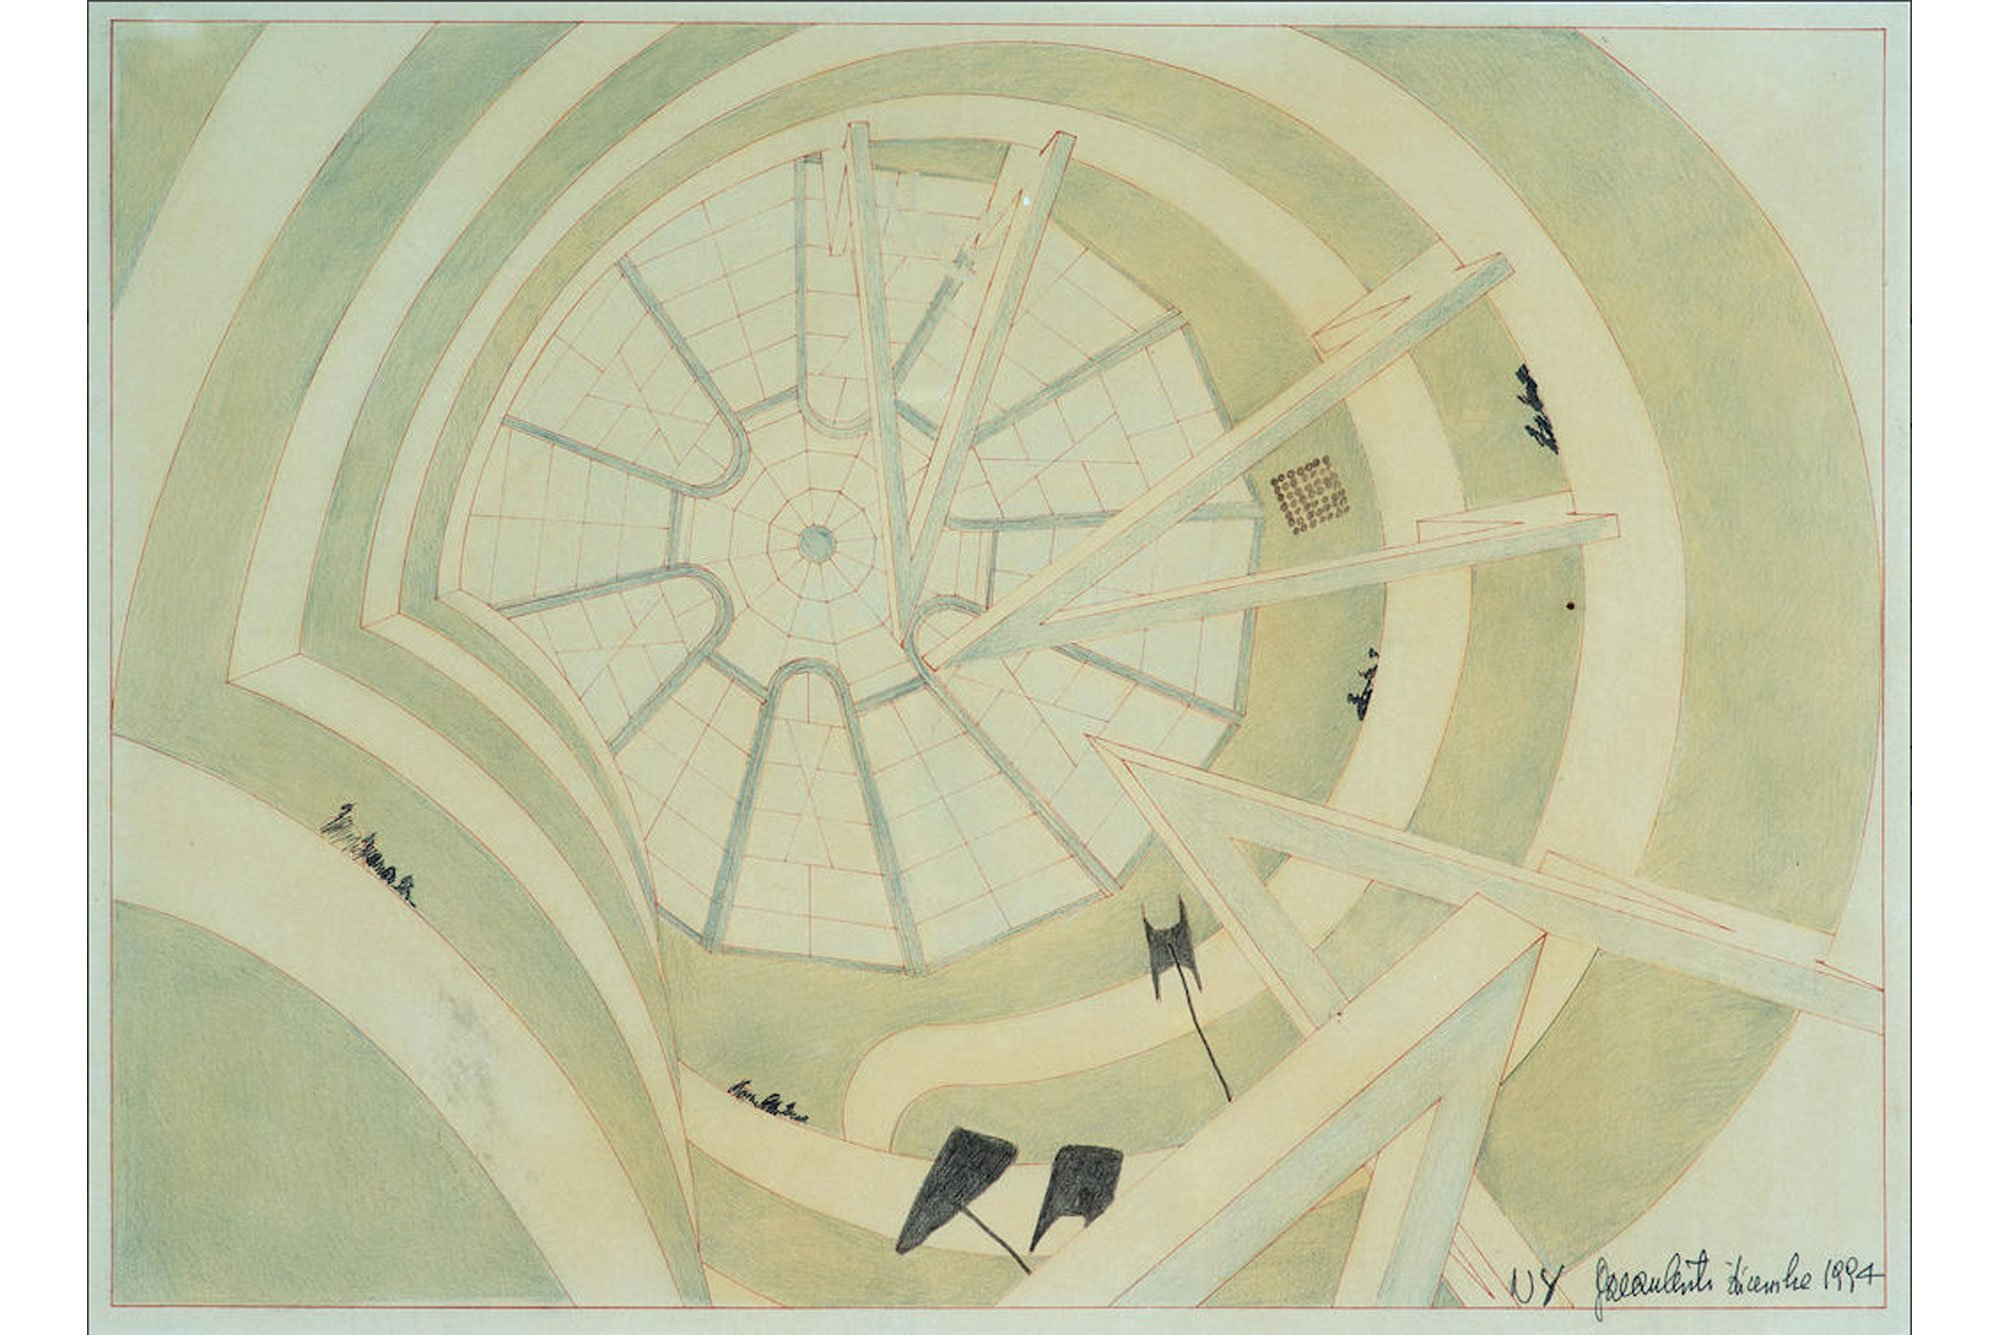 Pencil on paper, sketch of the atrium of The Guggenheim Museum during the seminal exhibition, The Italian Metamorphosis, 1943-1968. Made by Gae Aulenti.